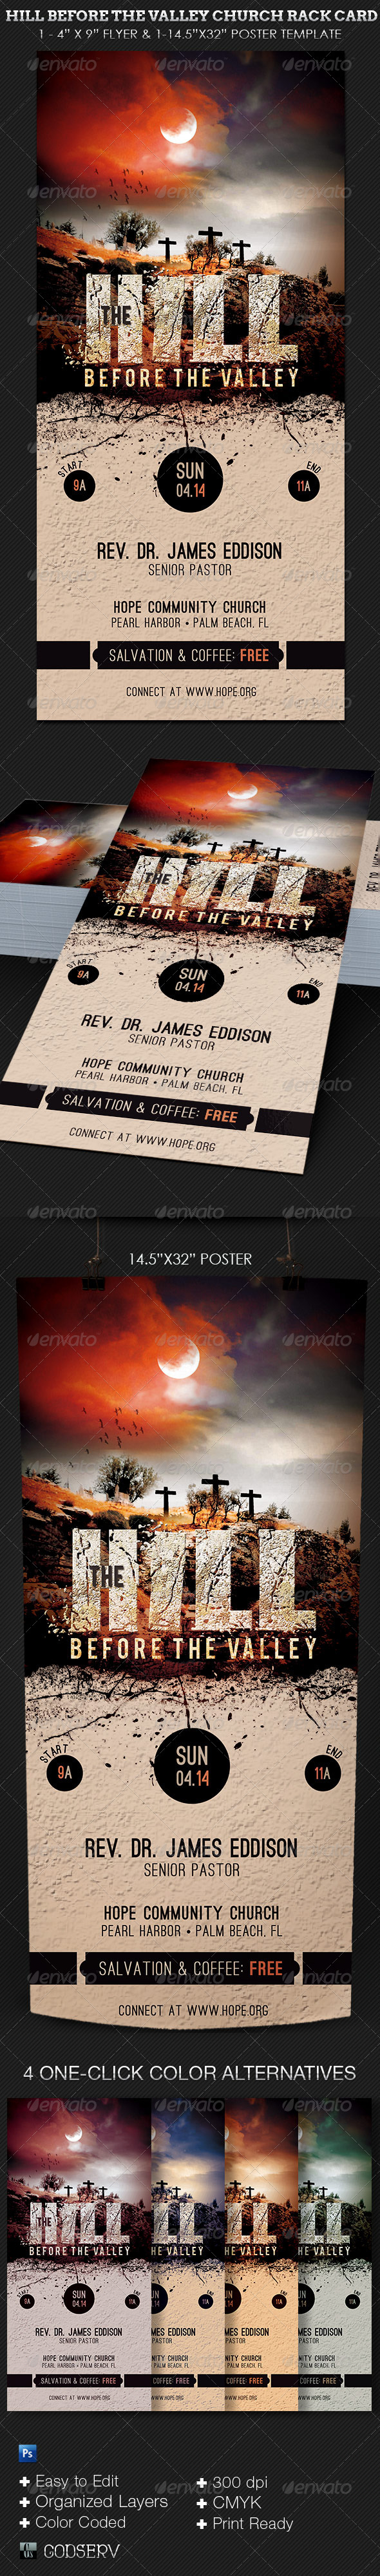 GraphicRiver Hill Before The Valley Church Rack Card Template 6982776